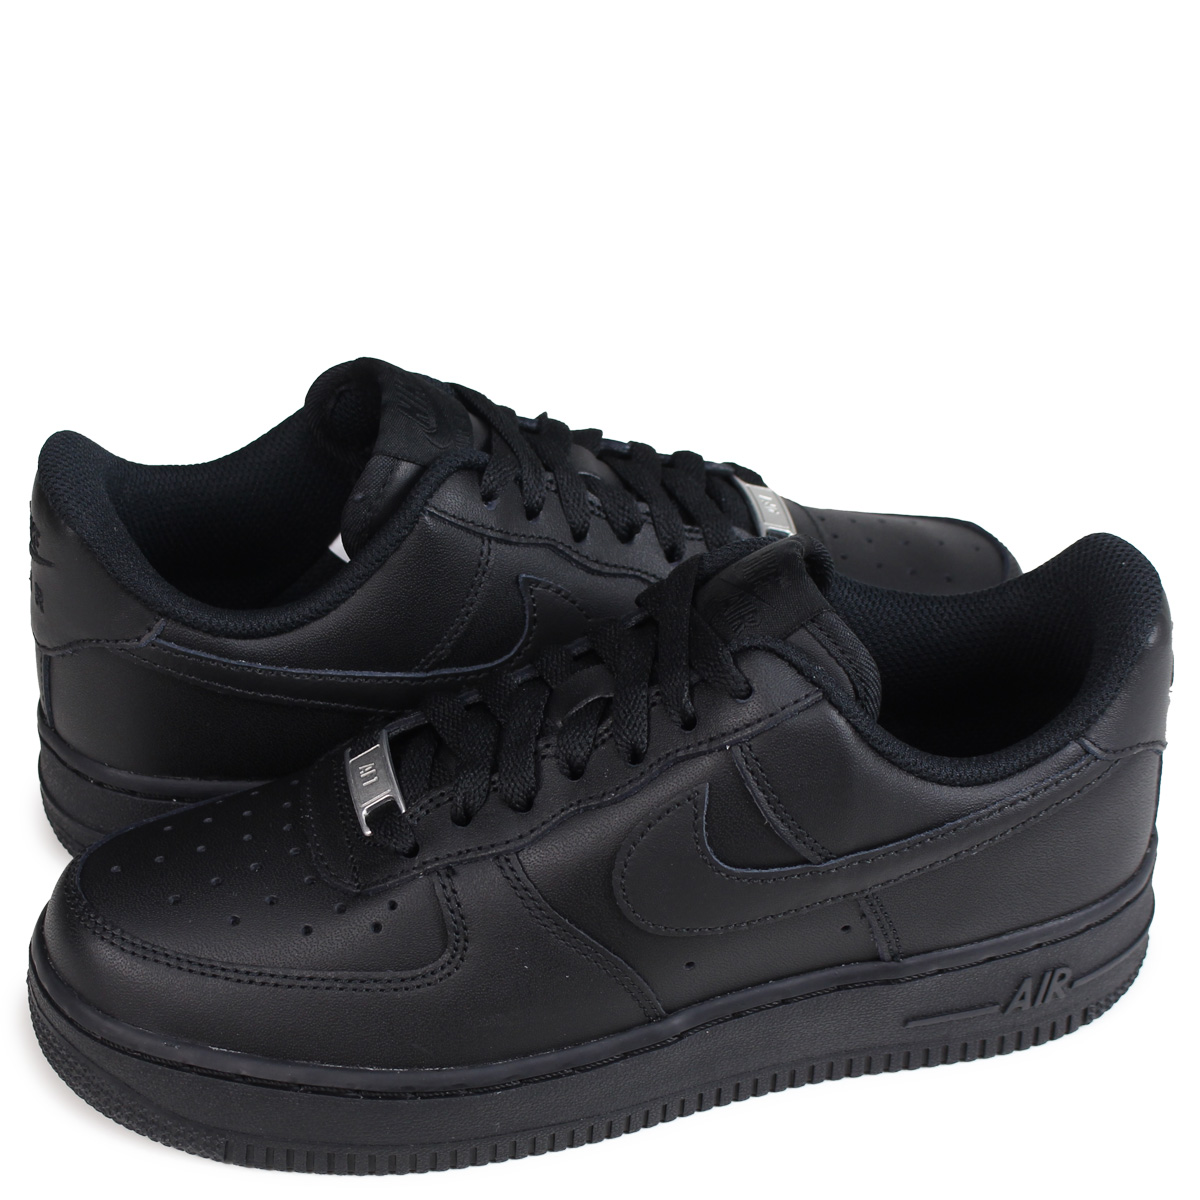 ALLSPORTS  NIKE Nike Air Force Turnschuhe Damenschuhe WMNS ... AIR FORCE 1 07 ... WMNS 3fceaf